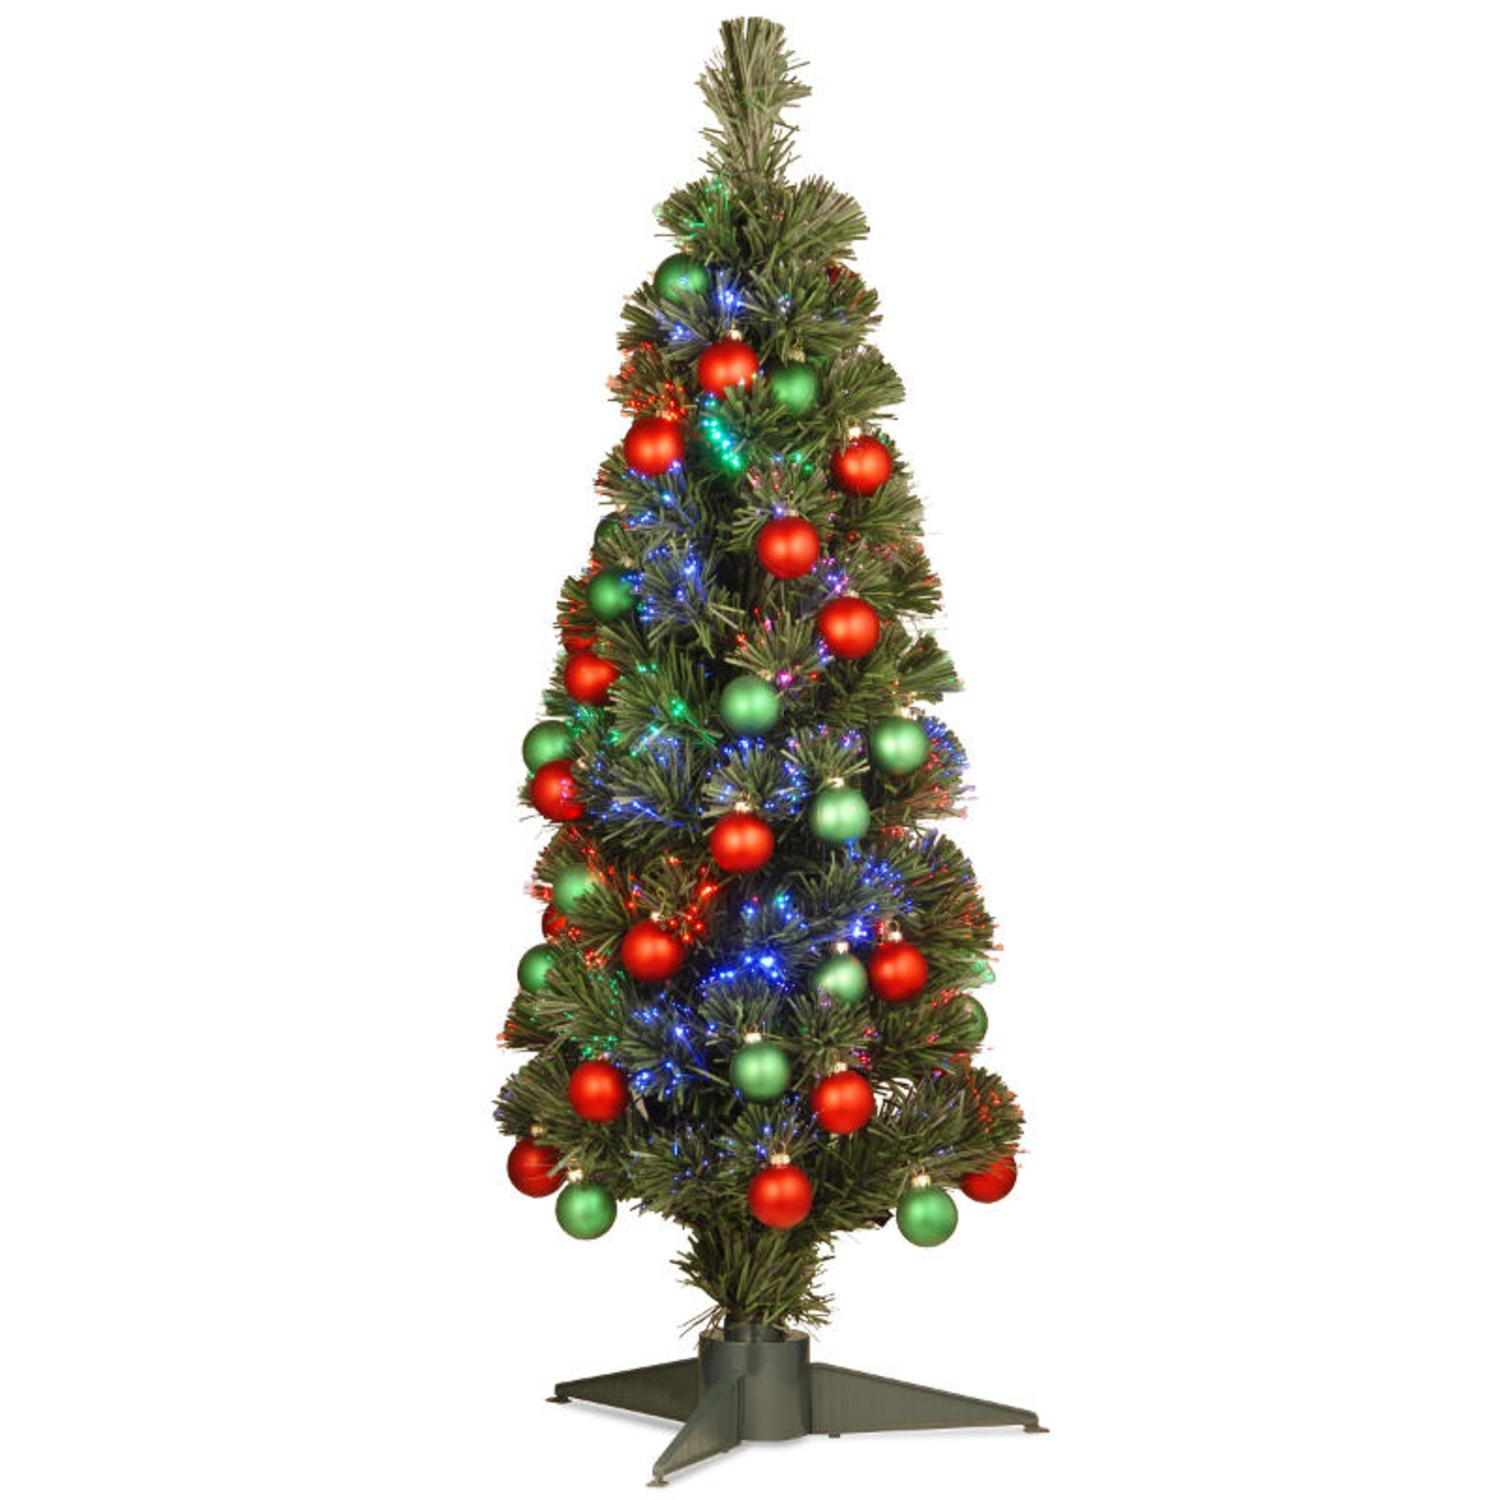 3' Pre-lit Fiber Optic Fireworks Artificial Christmas Tree with Ball Ornaments - Multi Lights